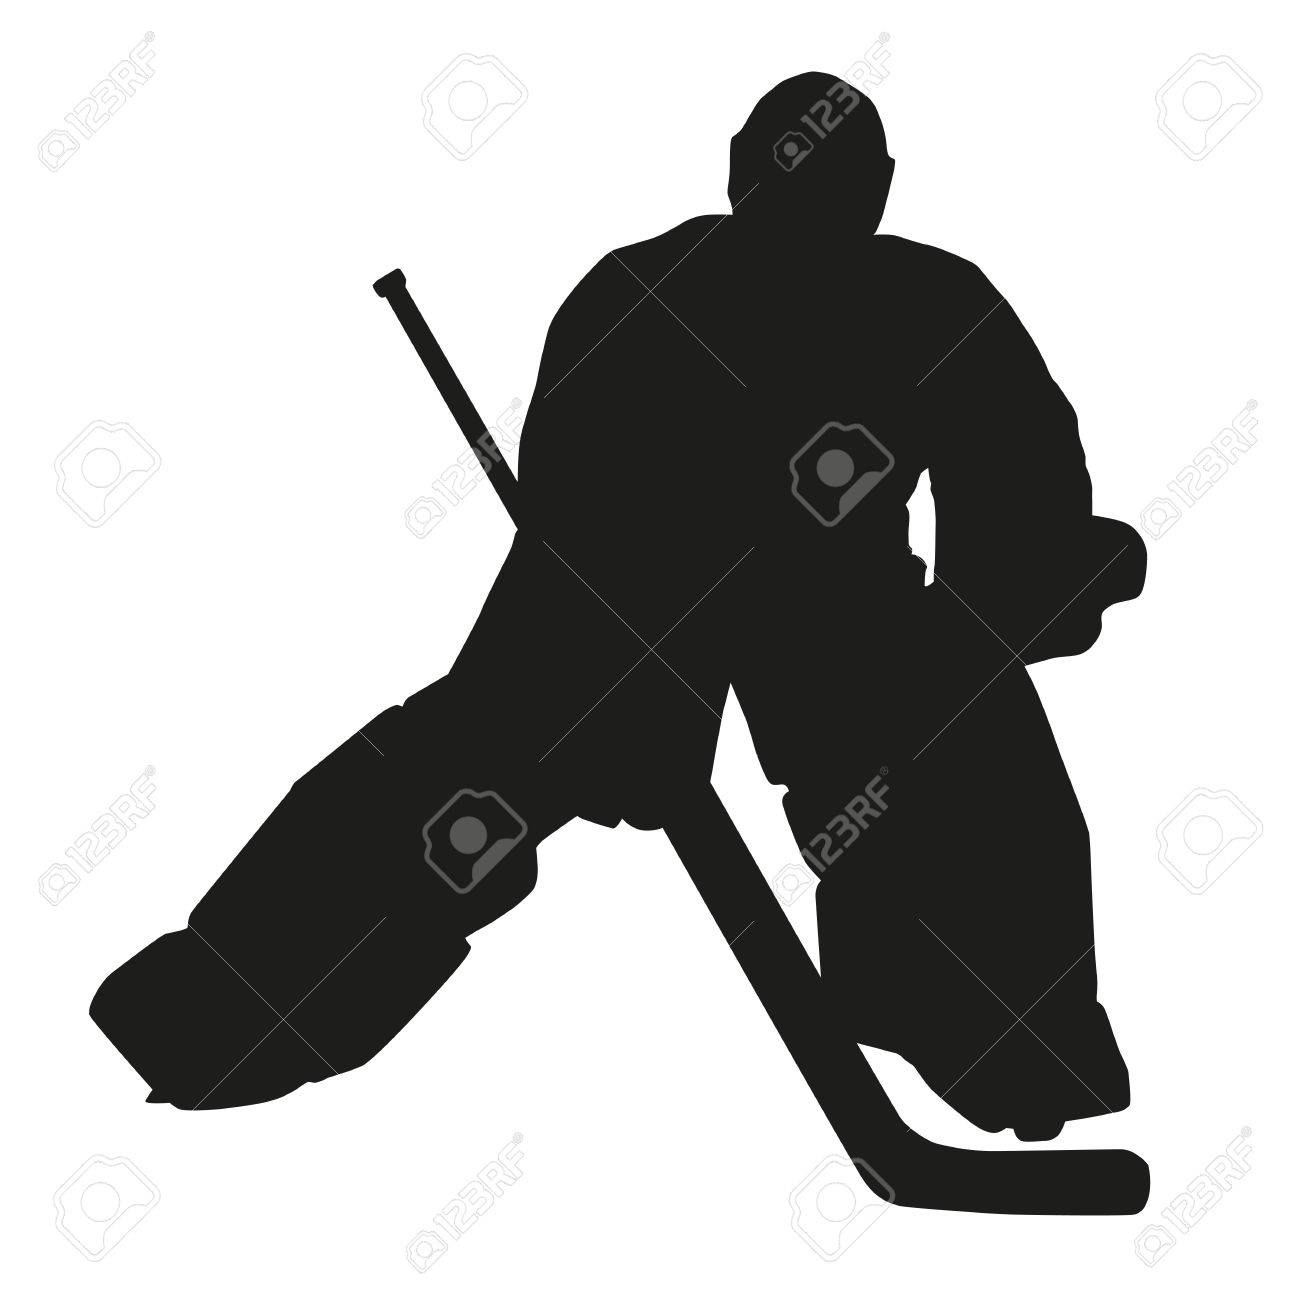 Hockey Goalie Silhouette Royalty Free Cliparts Vectors And Stock